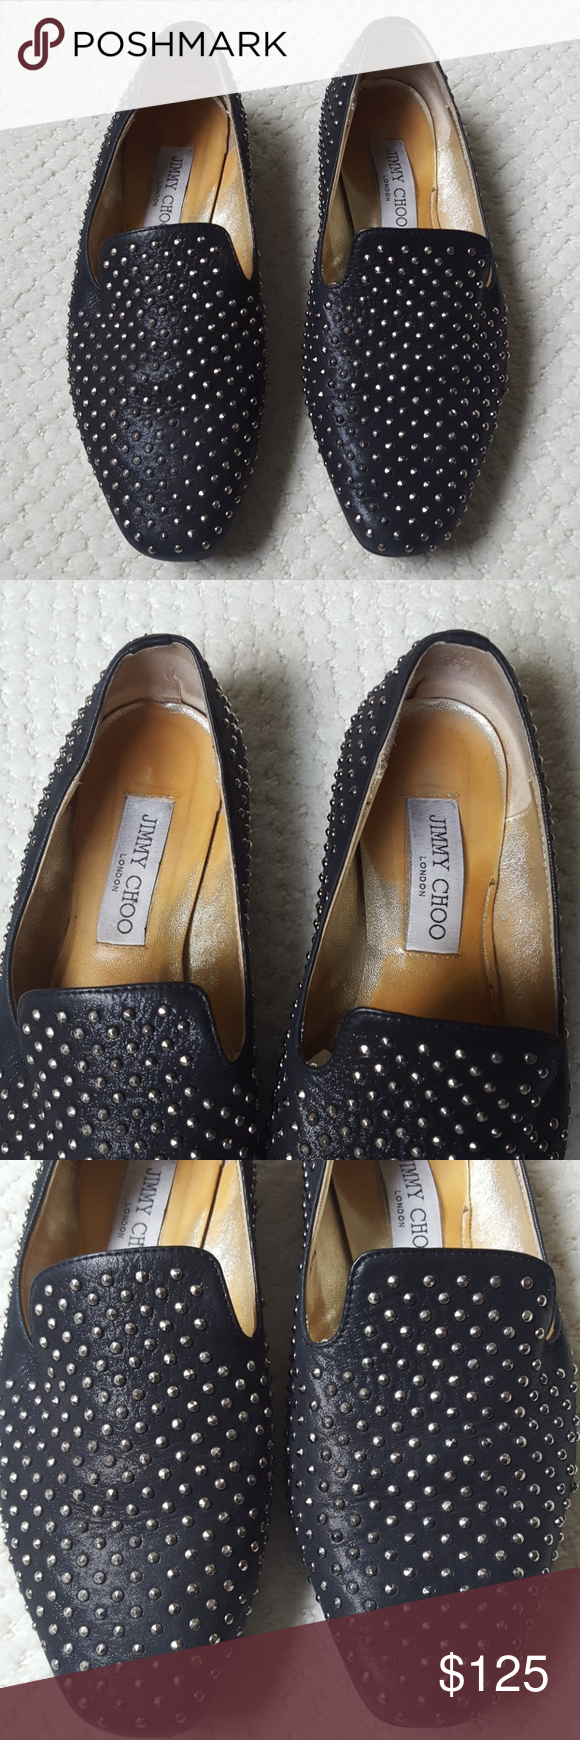 0914d7fb2ec7 Jimmy Choo silver studded 7.5 leather flats loafer